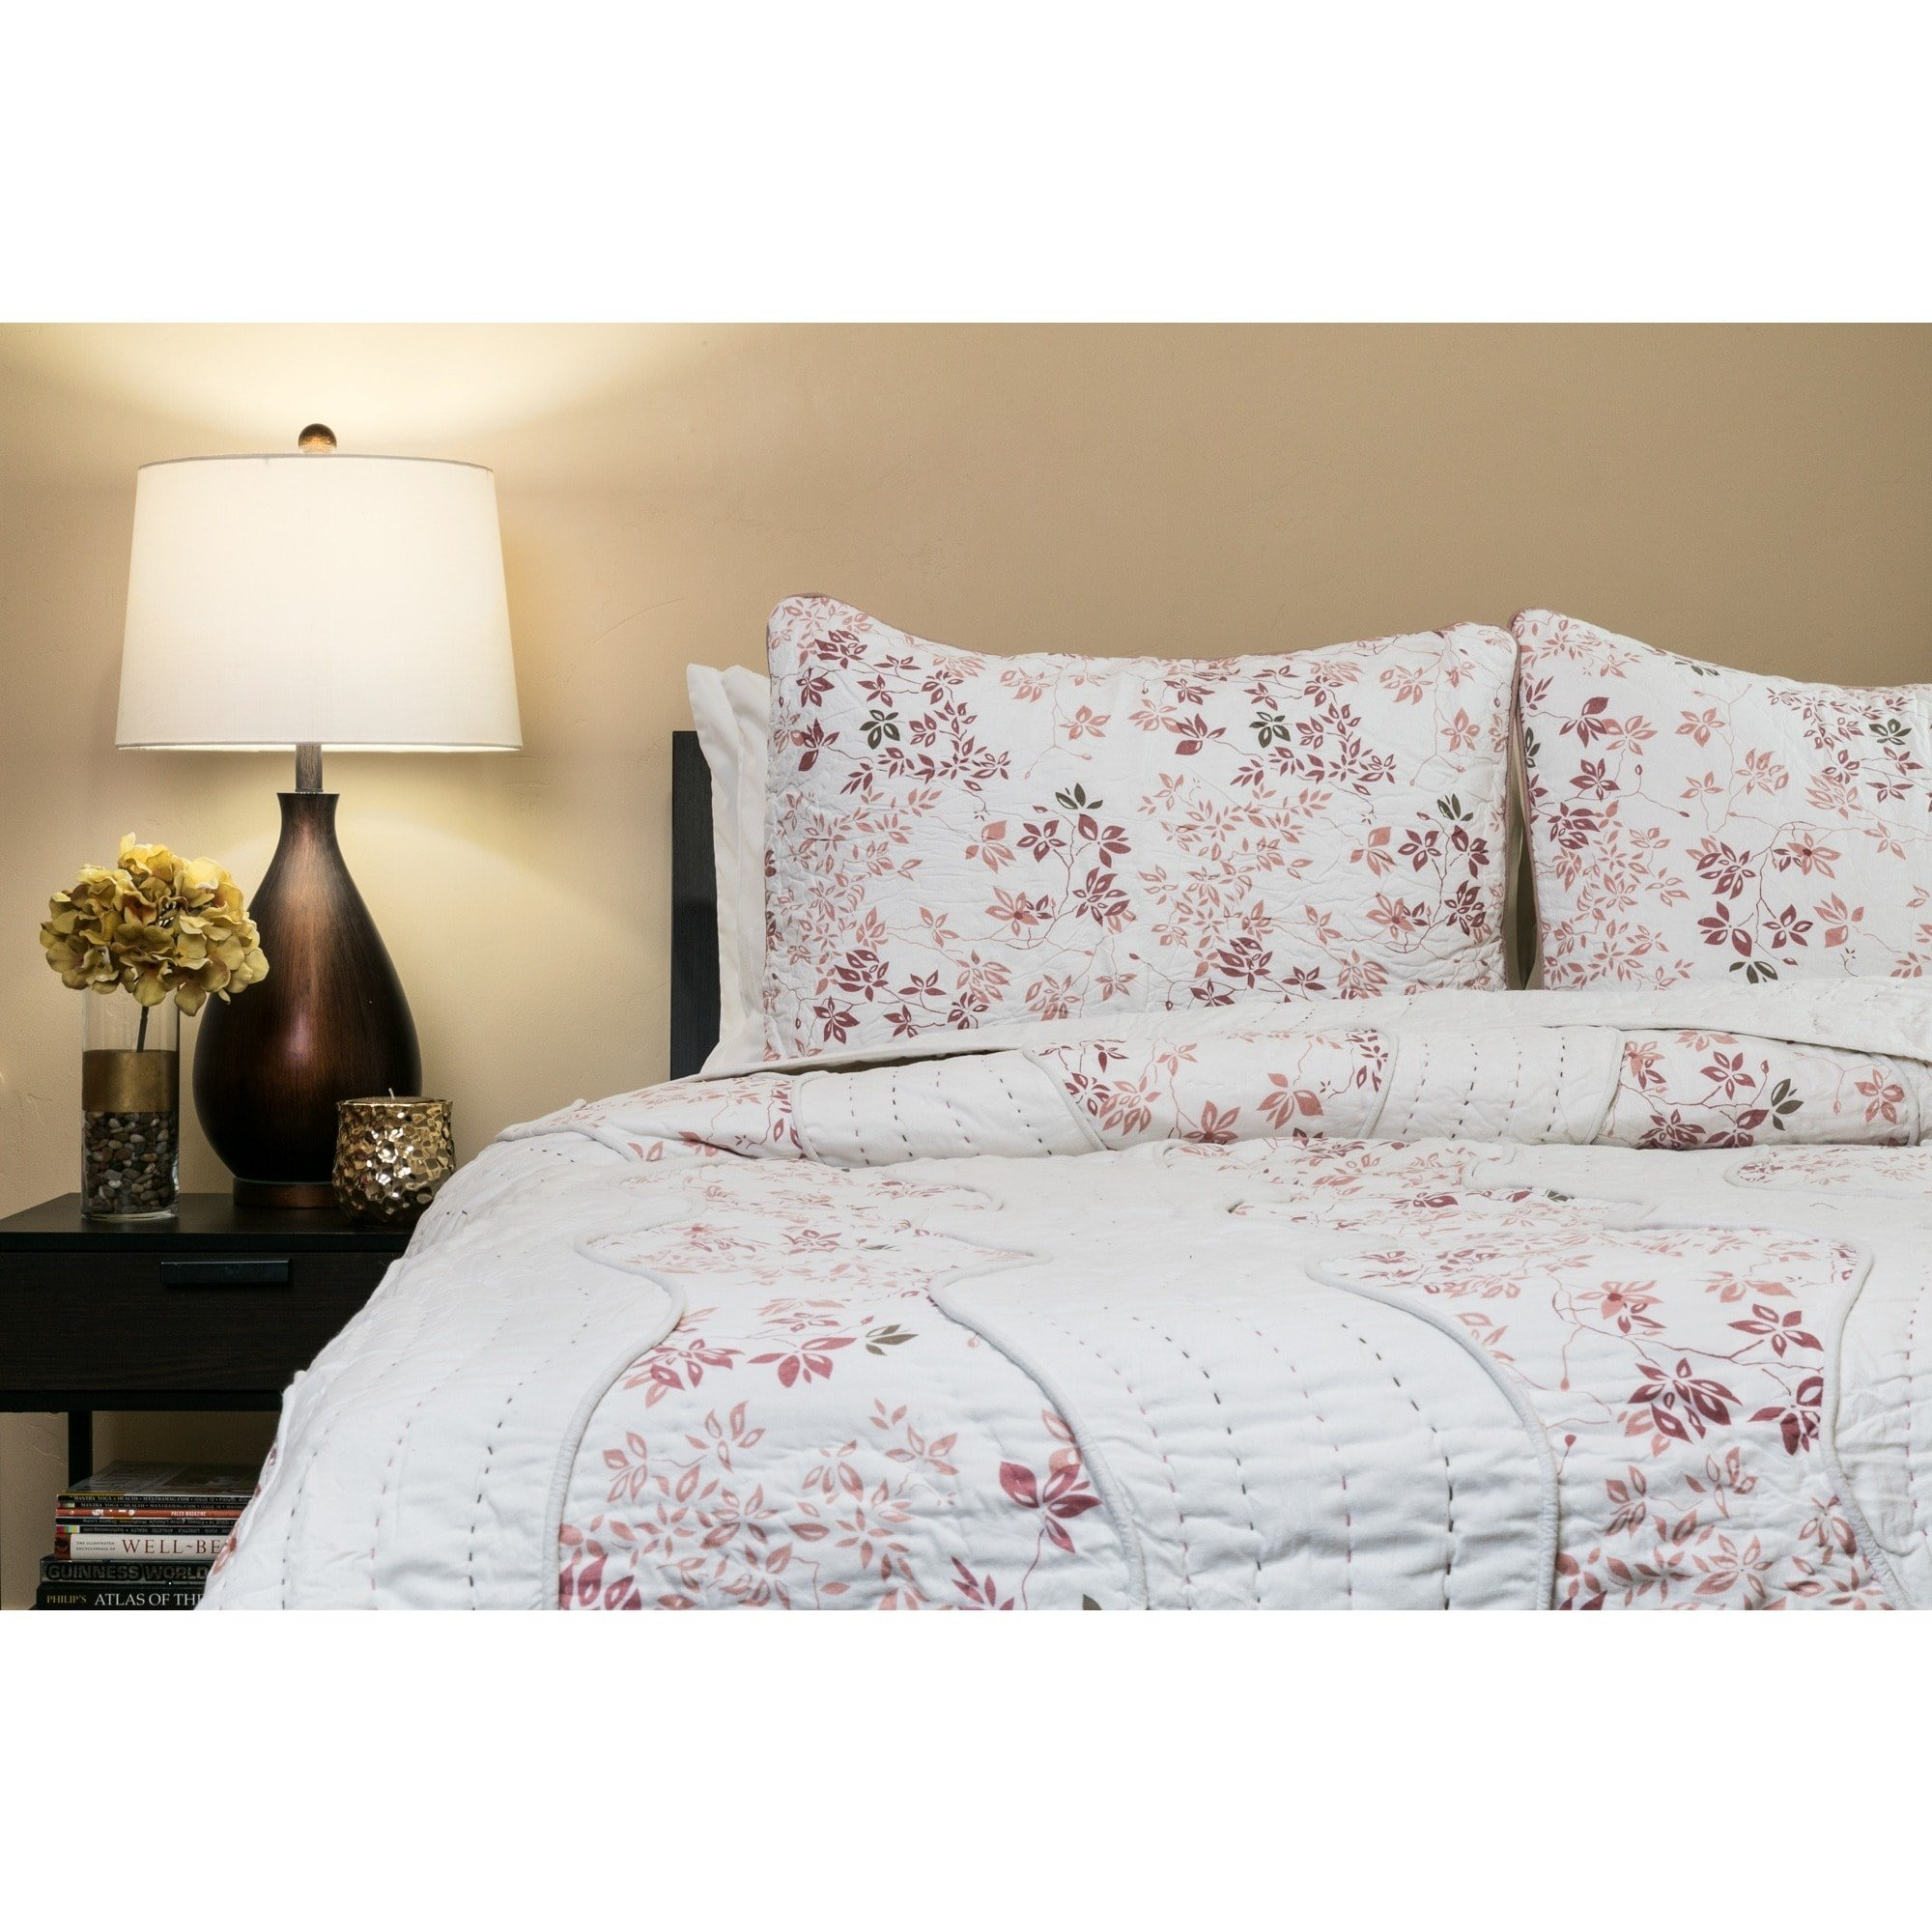 Arsons Home Furnishings Handmade Willows Blush 100-percent Cotton Queen-size Quilt Set (India) Blue